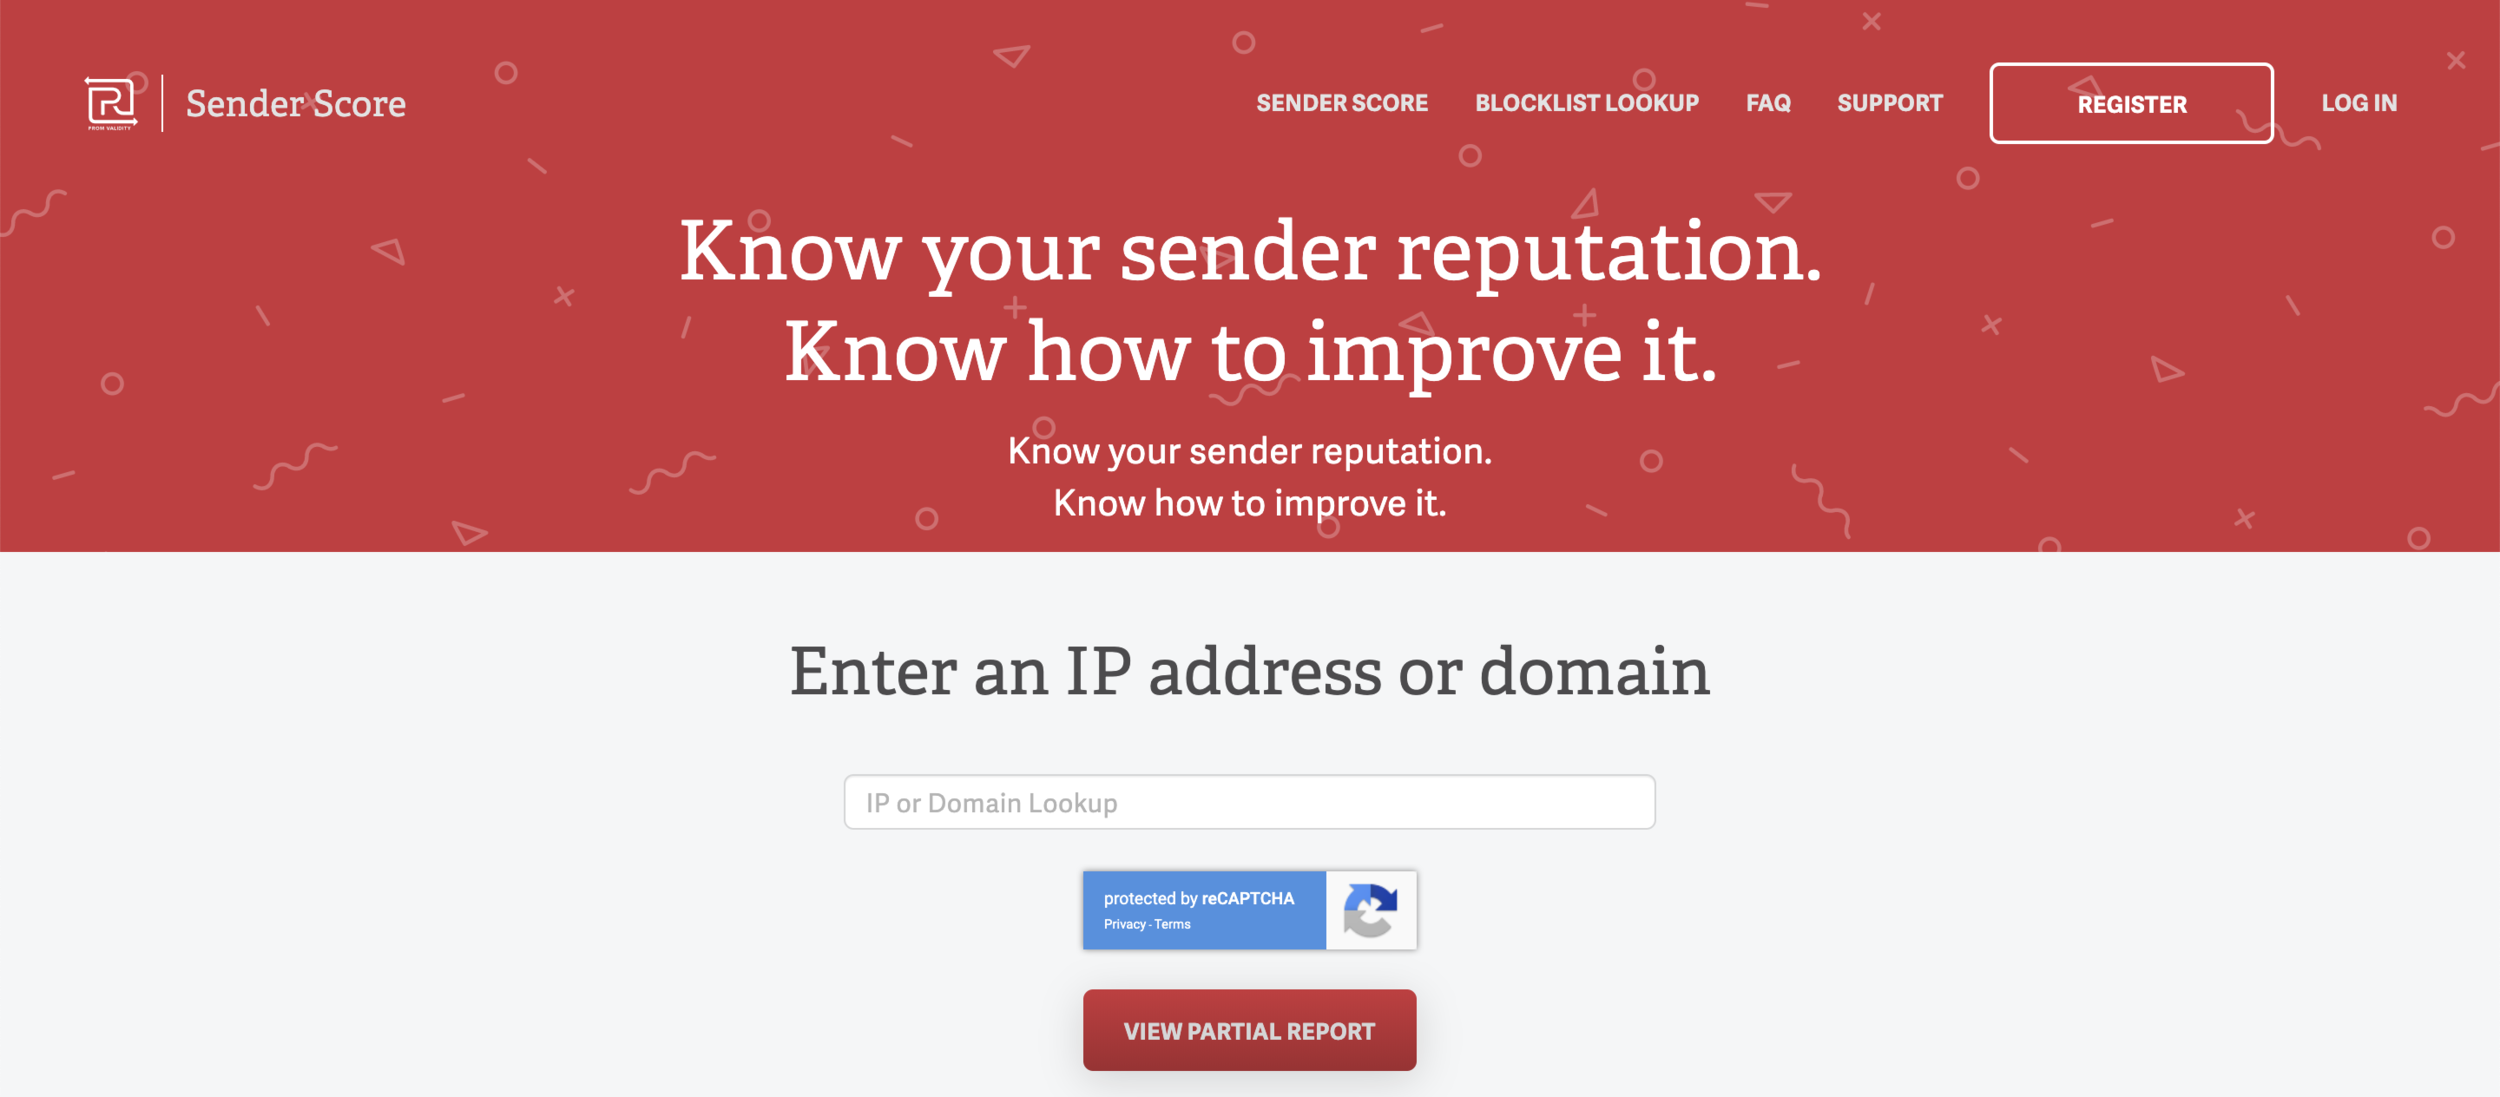 Sender Score's homepage allows you to check the sender reputation for your web domain